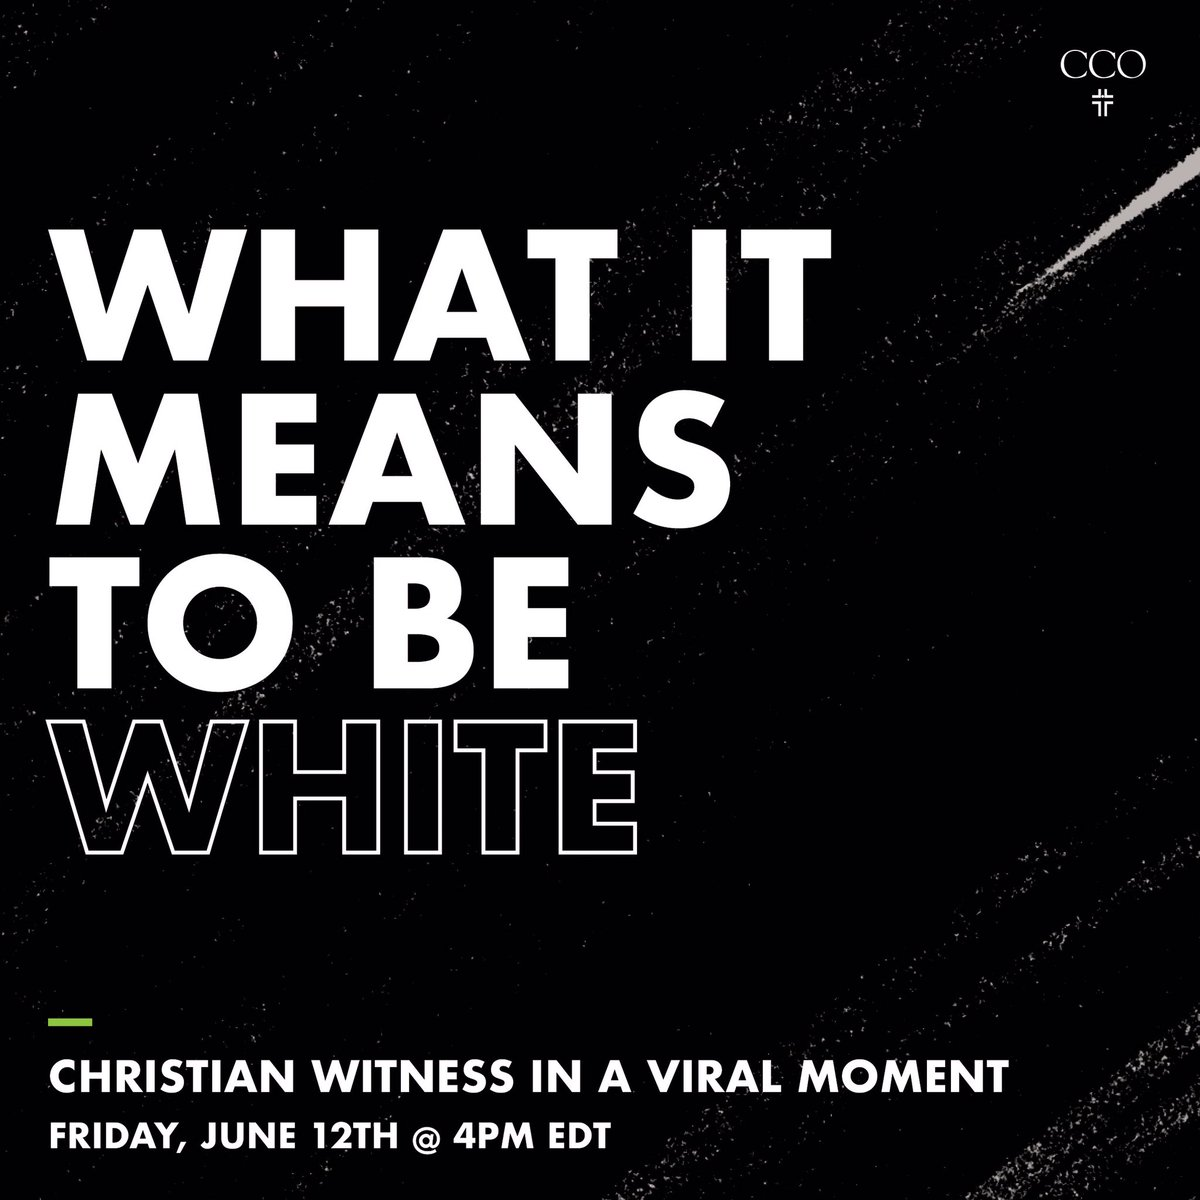 What does it mean to be white? A faithful Christian response to the viral moments + public outrage we are experiencing. / @ThornhillMA  w/ panelists Elizabeth Behrens, @EW_Richey Beth Walker, Daniel Warner, @cbmussel Kaylee Van Gent + @jamiedonne  Friday, June 12th @ 4pm https://t.co/YvTeRpLc4a